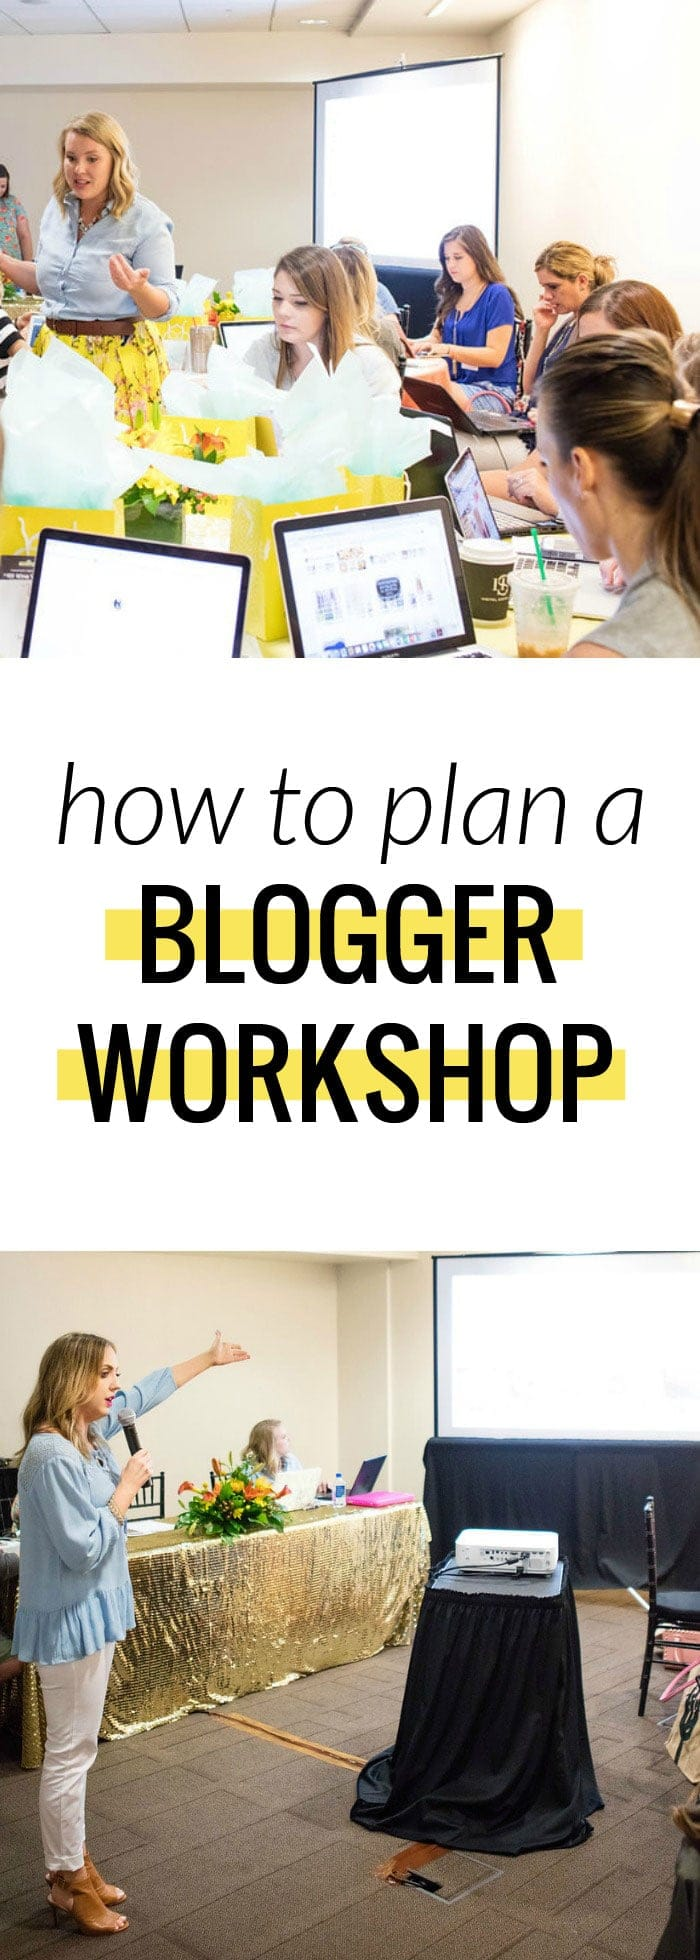 How to plan a blogger workshop - Have something you want to teach to local bloggers? Create your own blogger workshop! This goes over getting a venue, sponsors, and how to pull off a successful event!